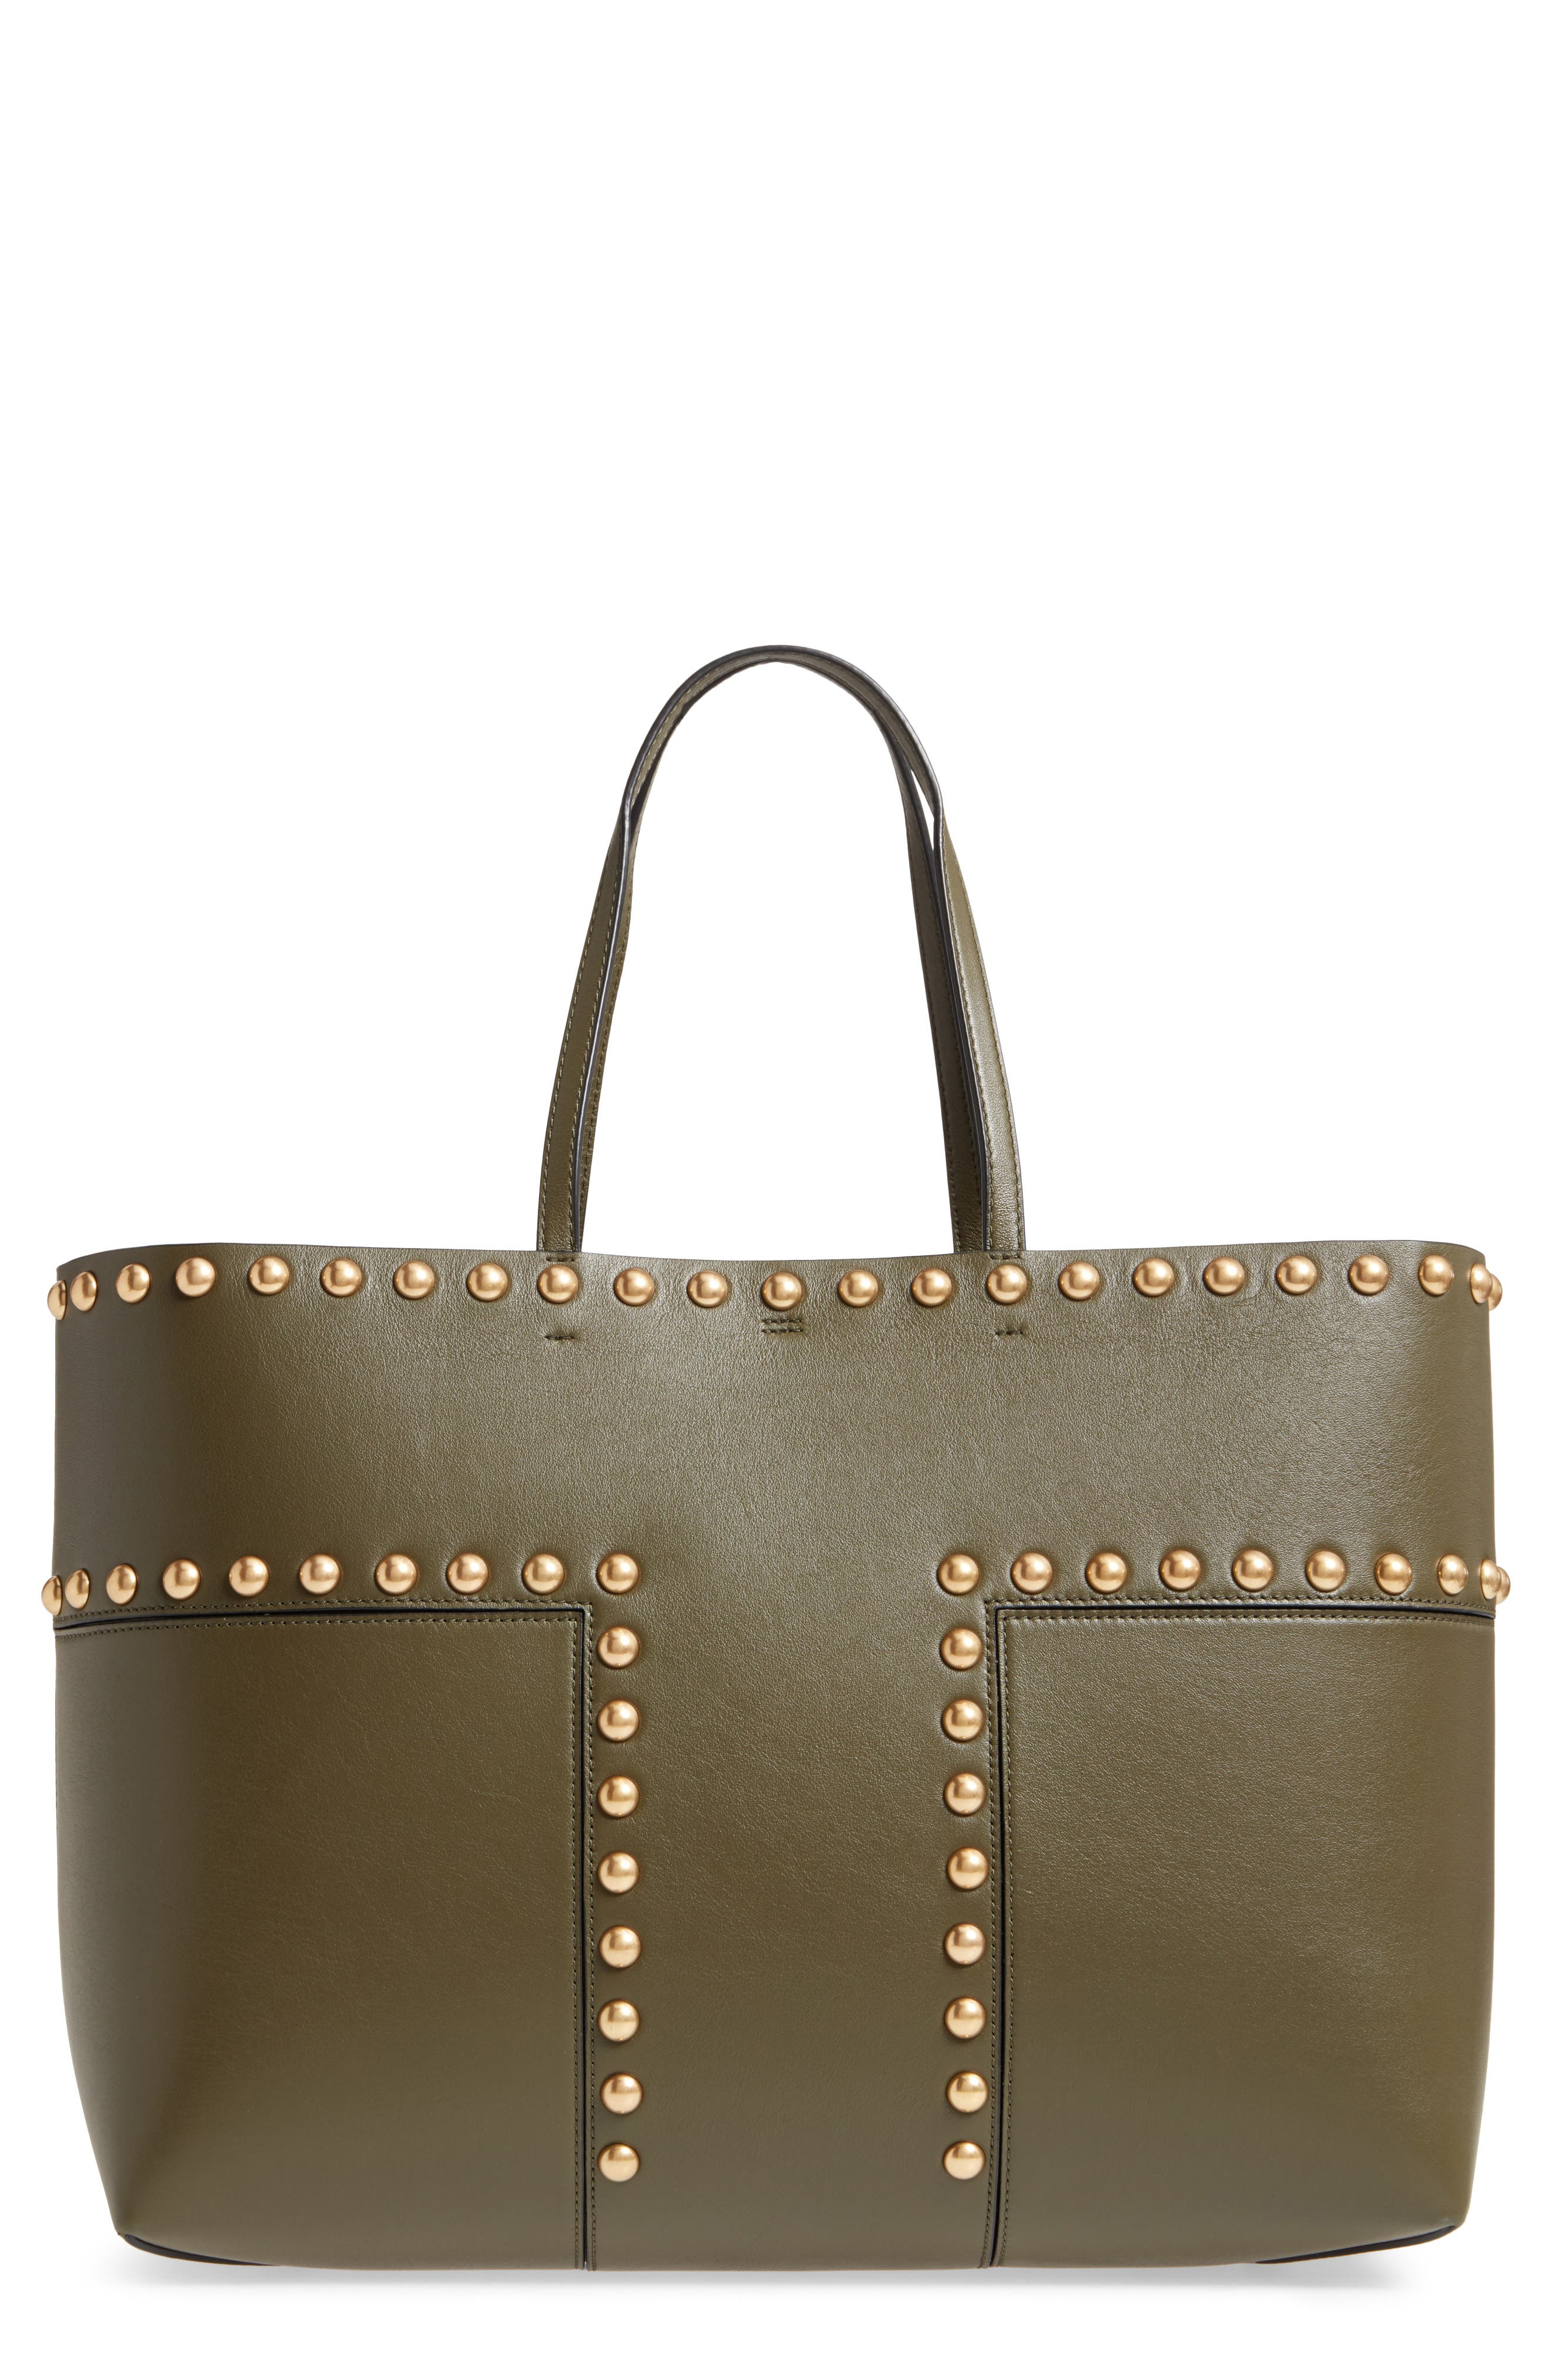 Block-T Studded Leather Tote,                             Main thumbnail 1, color,                             300